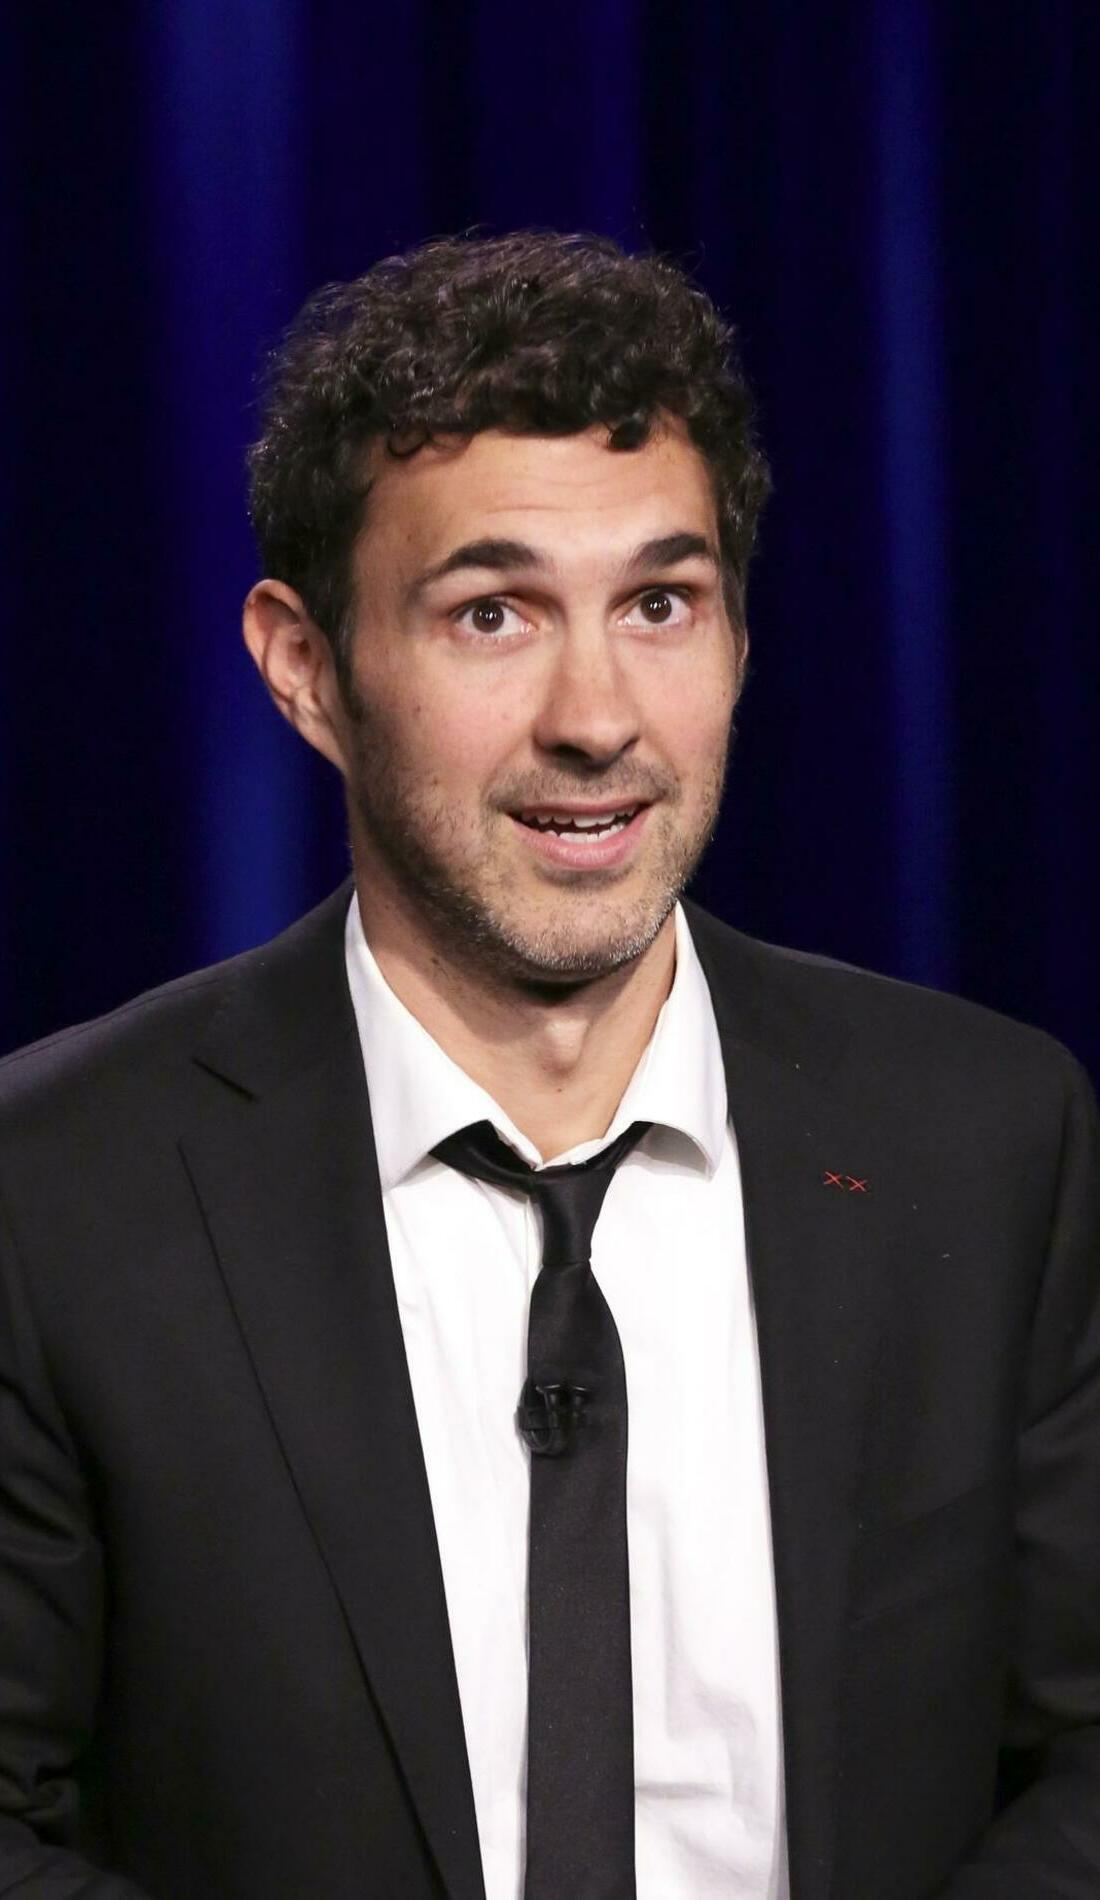 A Mark Normand live event